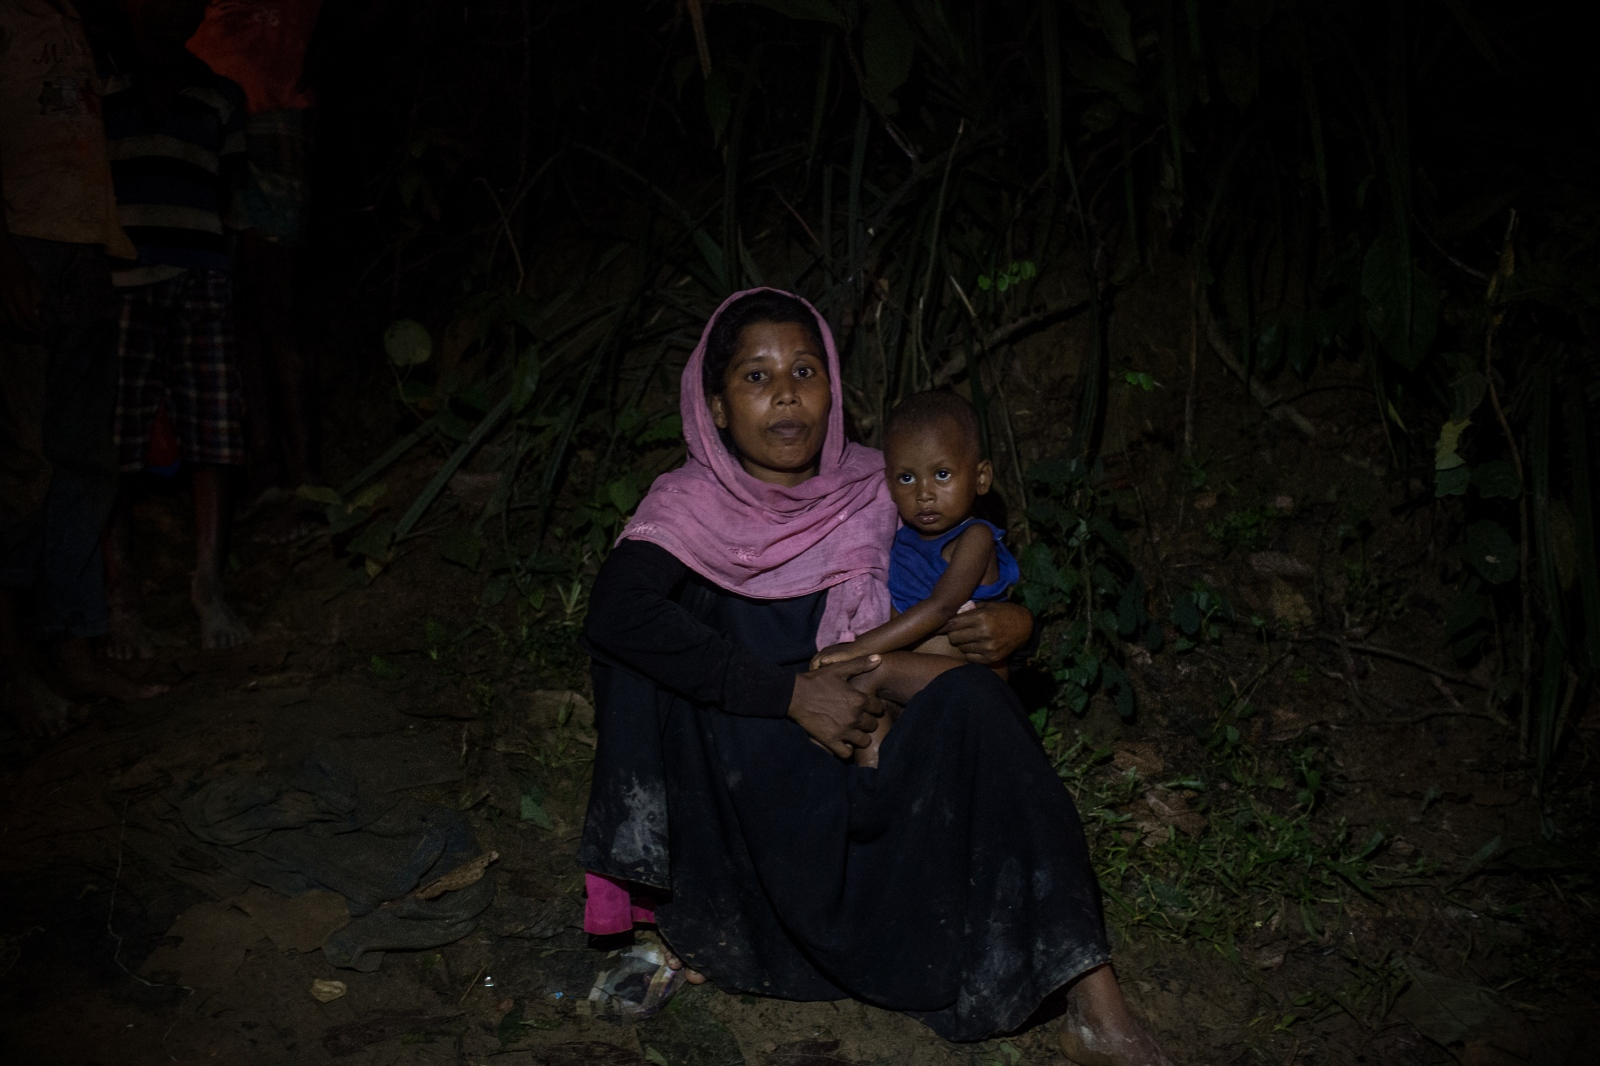 Fatima Fatoon, 25, waits by the side of the road for food and cash distribution with her son near the Balukhali refugee camp, Bangladesh on Friday, September 22, 2017. She has three children who she fled her village with when the Burmese military attacked and burned their homes. In the chaos, she became separated from her husband and he is still in Myanmar, although she does not know if he is alive.